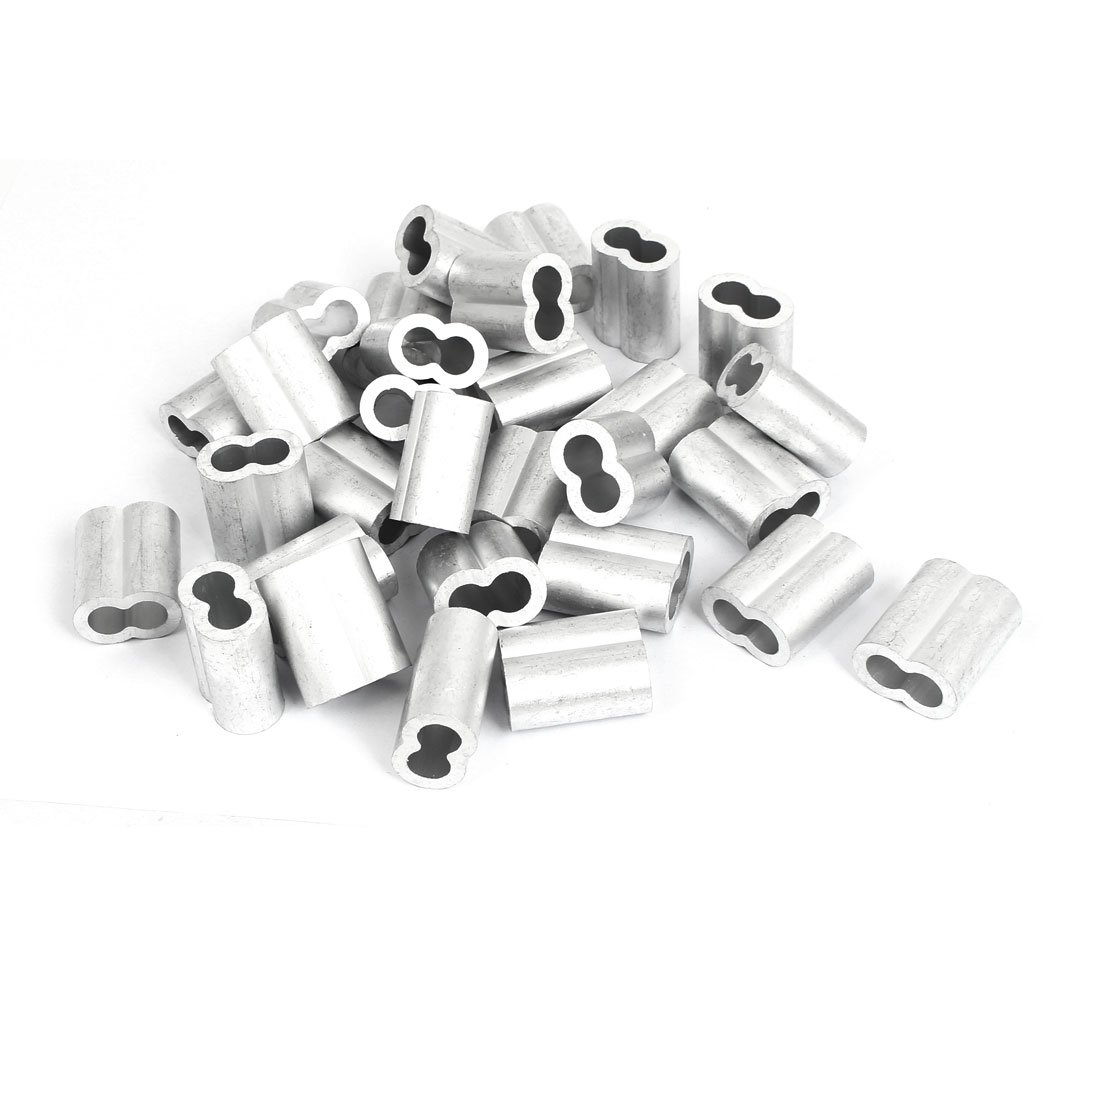 uxcell 10mm 3/8'' Double Hole Aluminum Swage Sleeve Wire Rope Clamp Clip 30pcs